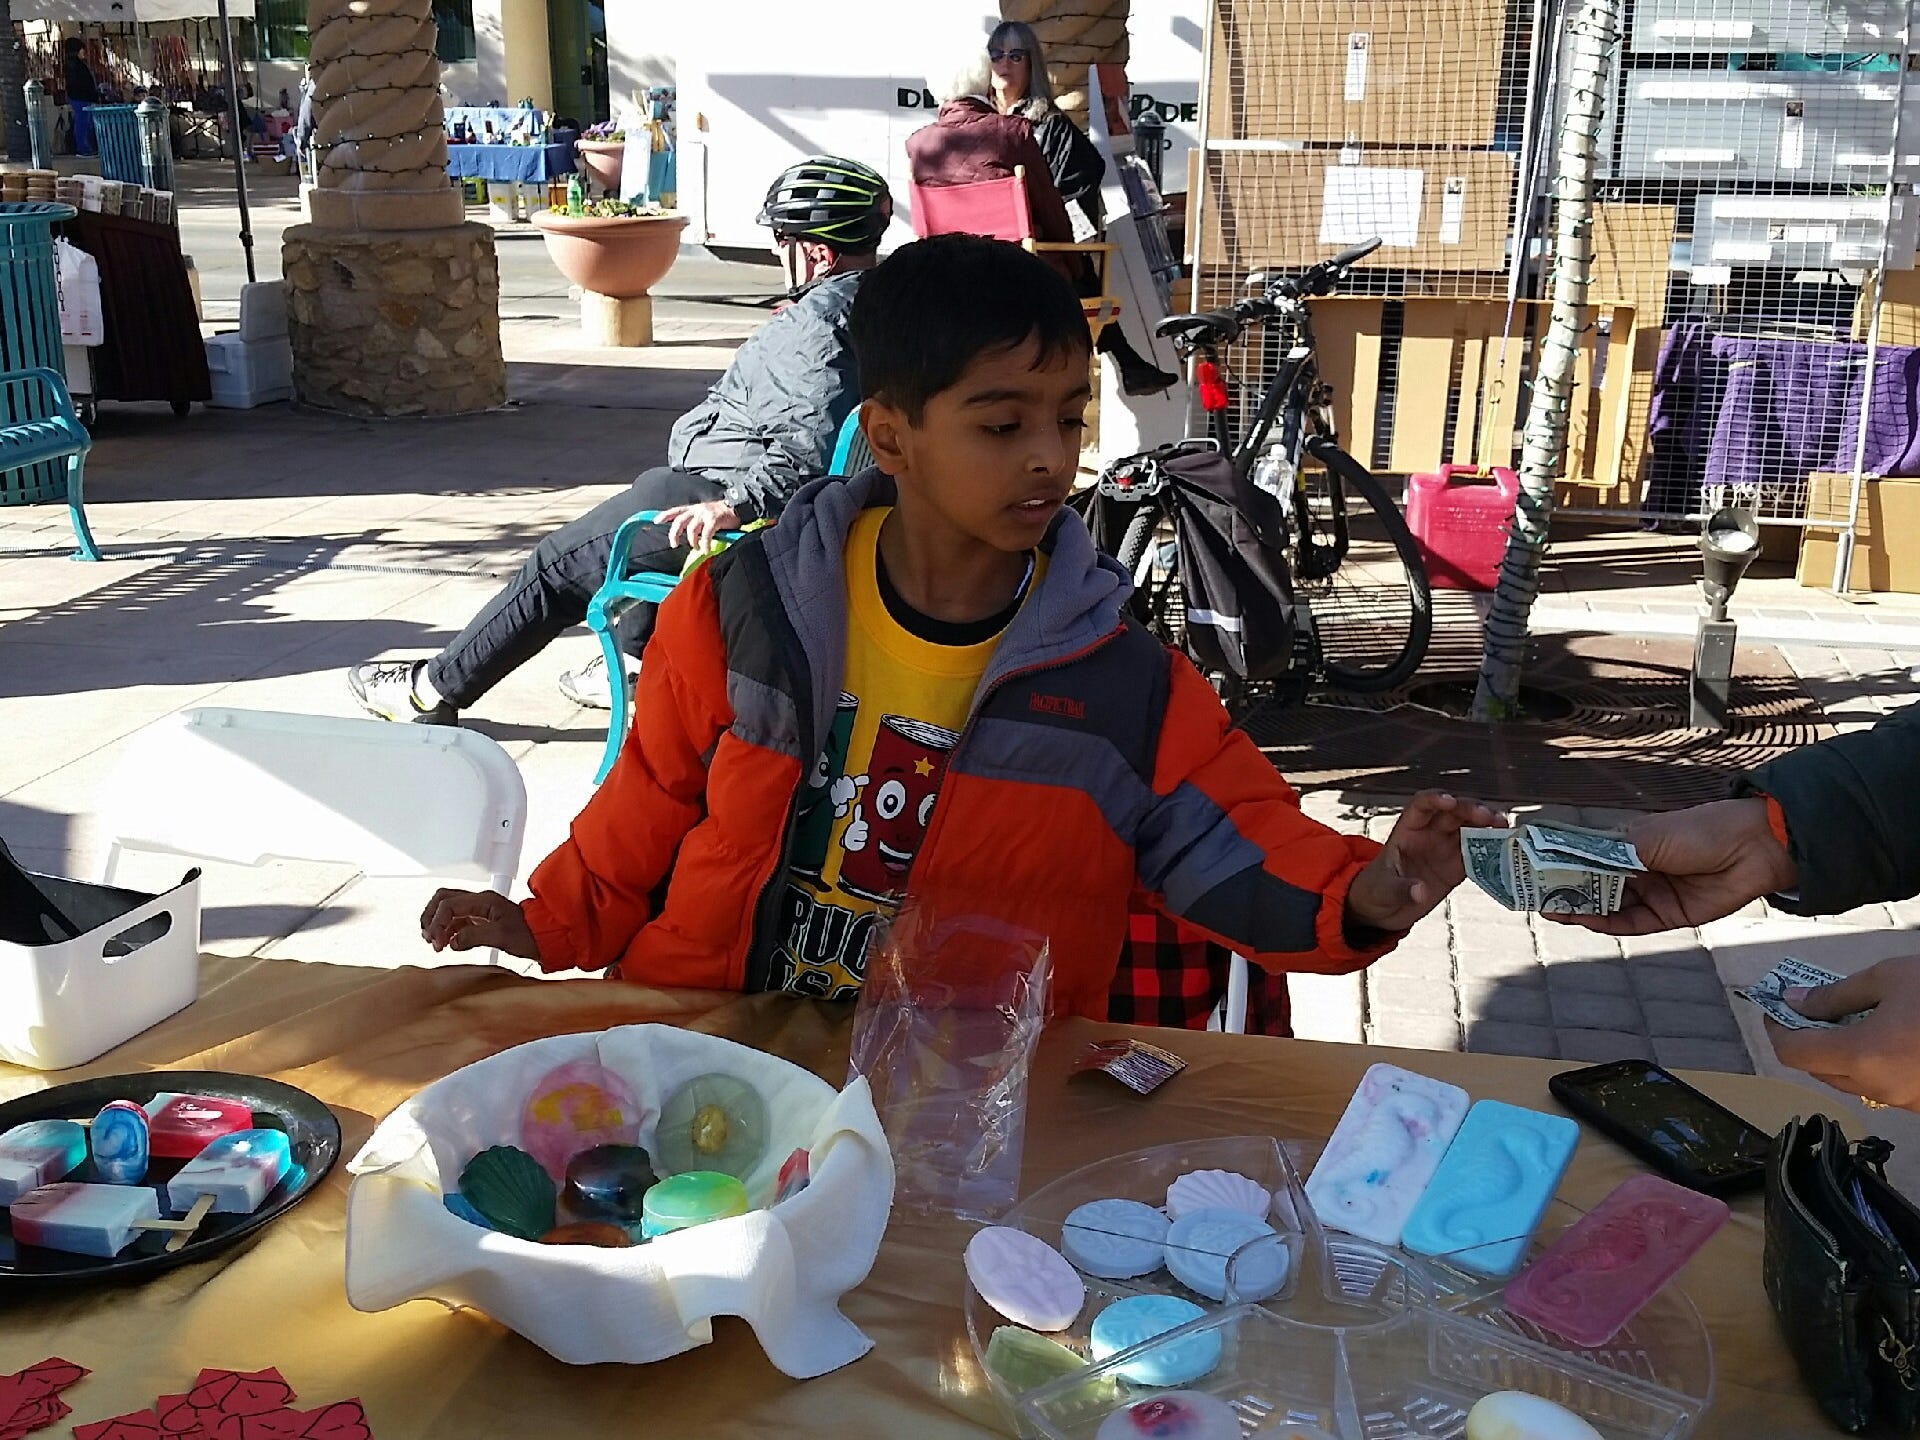 Anay Pahwa sells colorful homemade soaps on Saturday, Nov. 17, 2018 at the Cruces Kids Can Business Showcase at Plaza de Las Cruces.